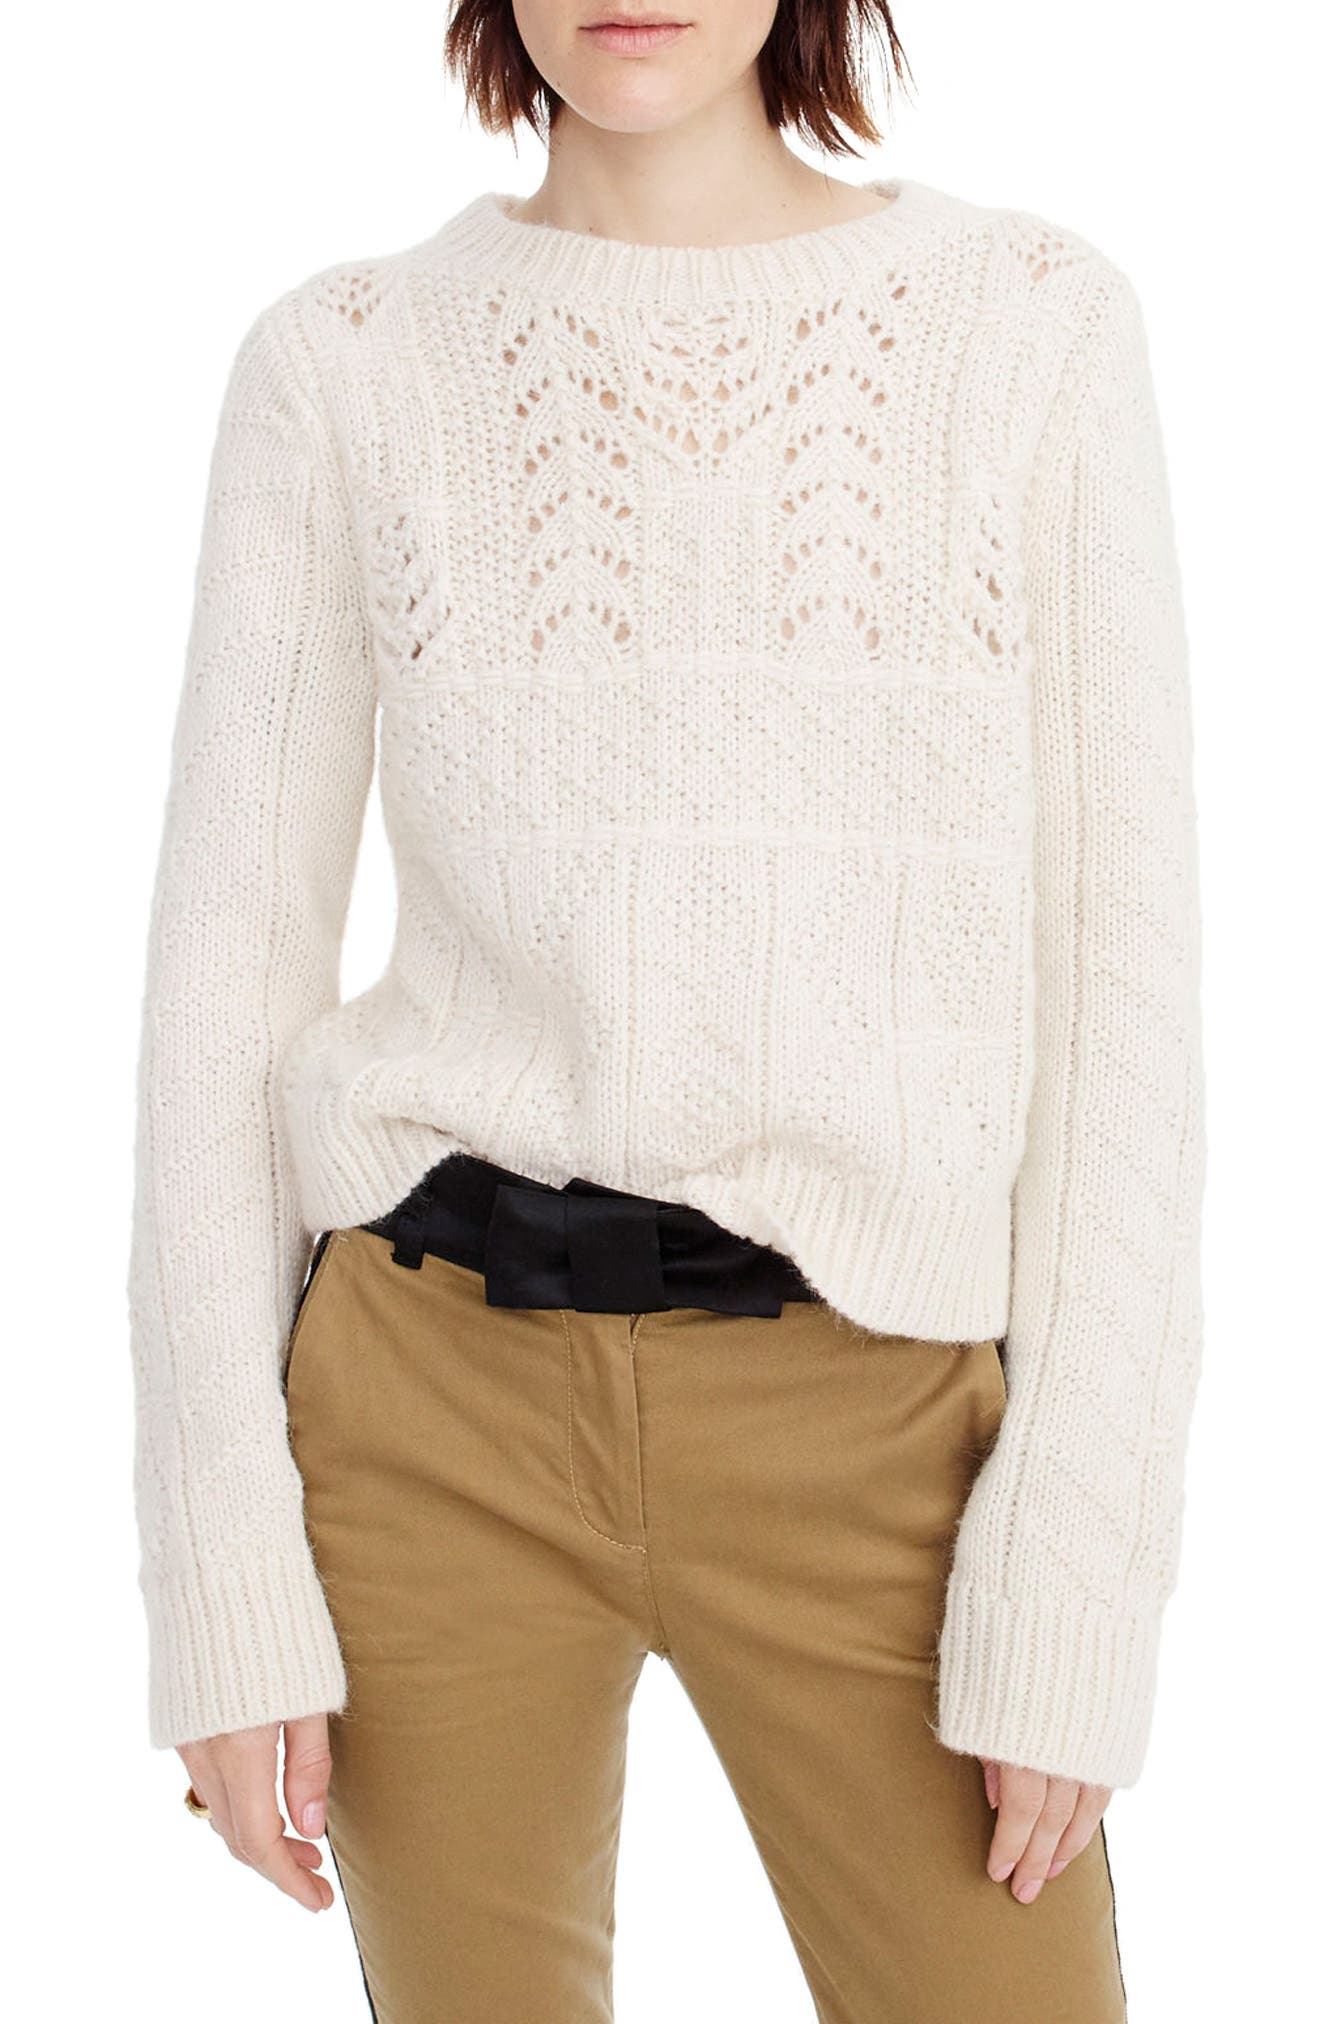 J.Crew Heritage 1988 Cable Knit Sweater